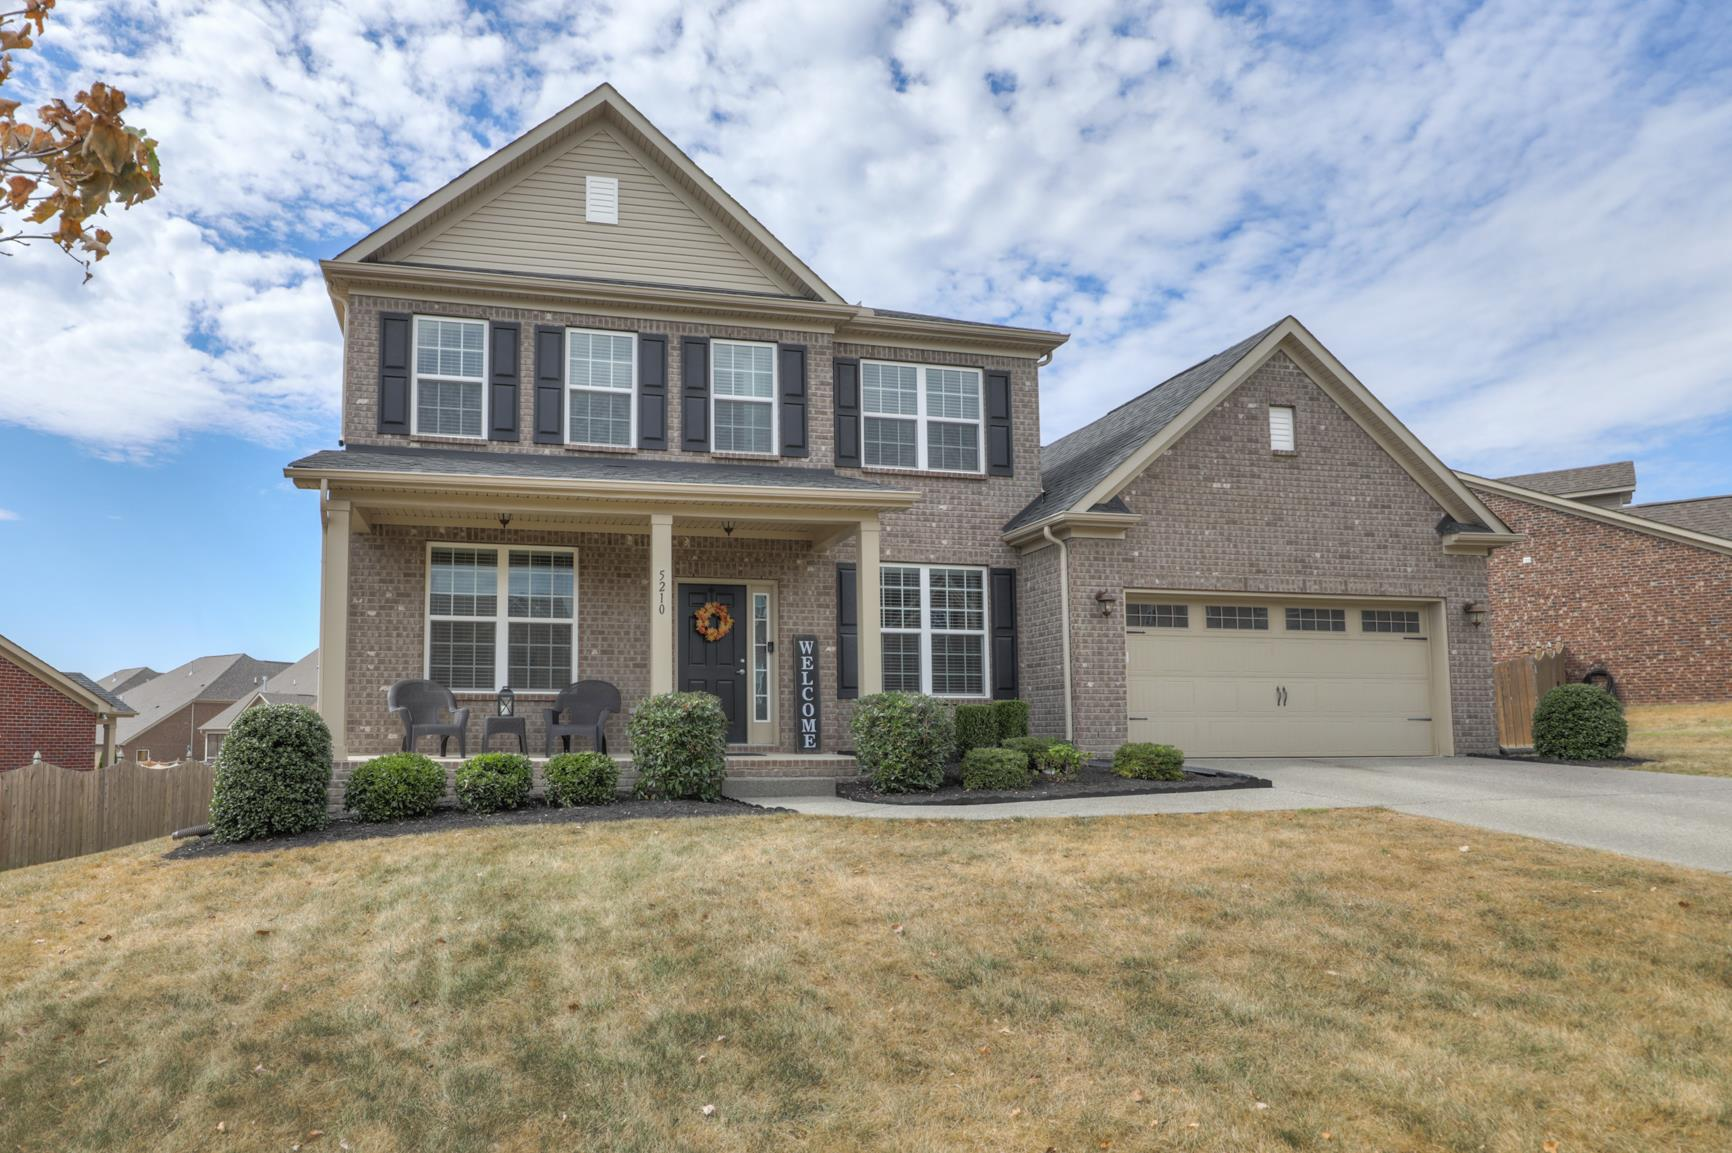 5210 Giardino Drive, Mount Juliet, TN 37122 - Mount Juliet, TN real estate listing